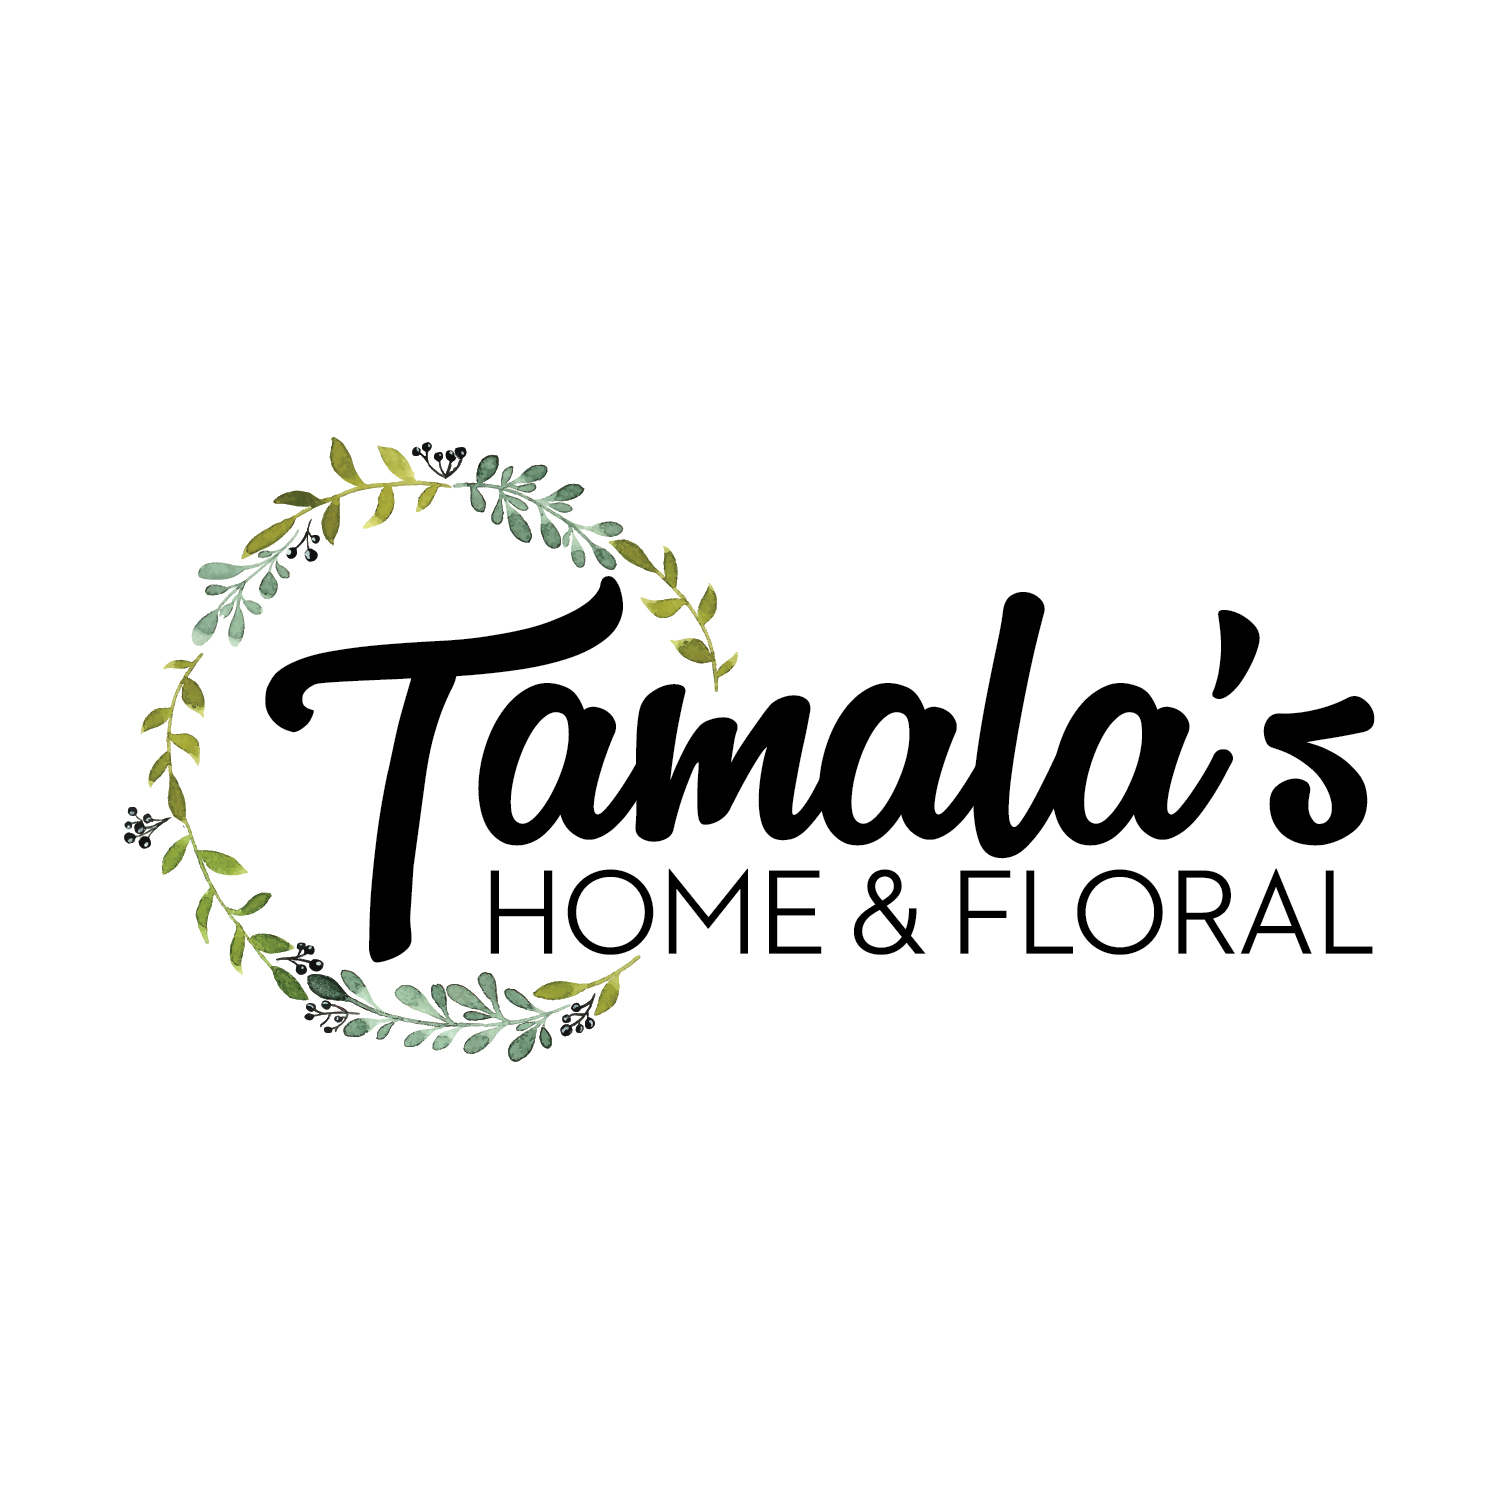 Tamalas Home and Floral image